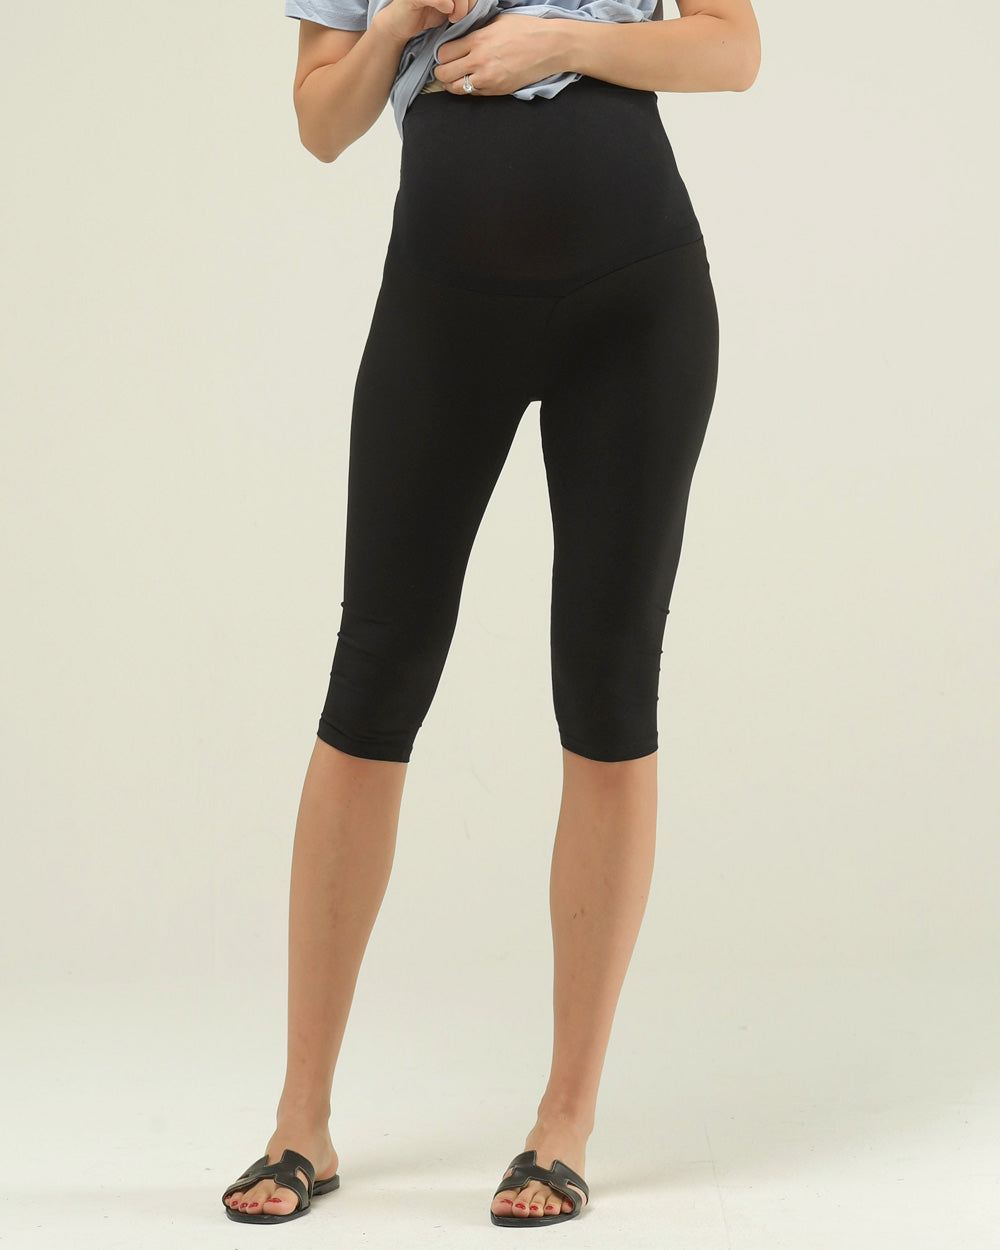 COOLING CAPRI LEGGINGS